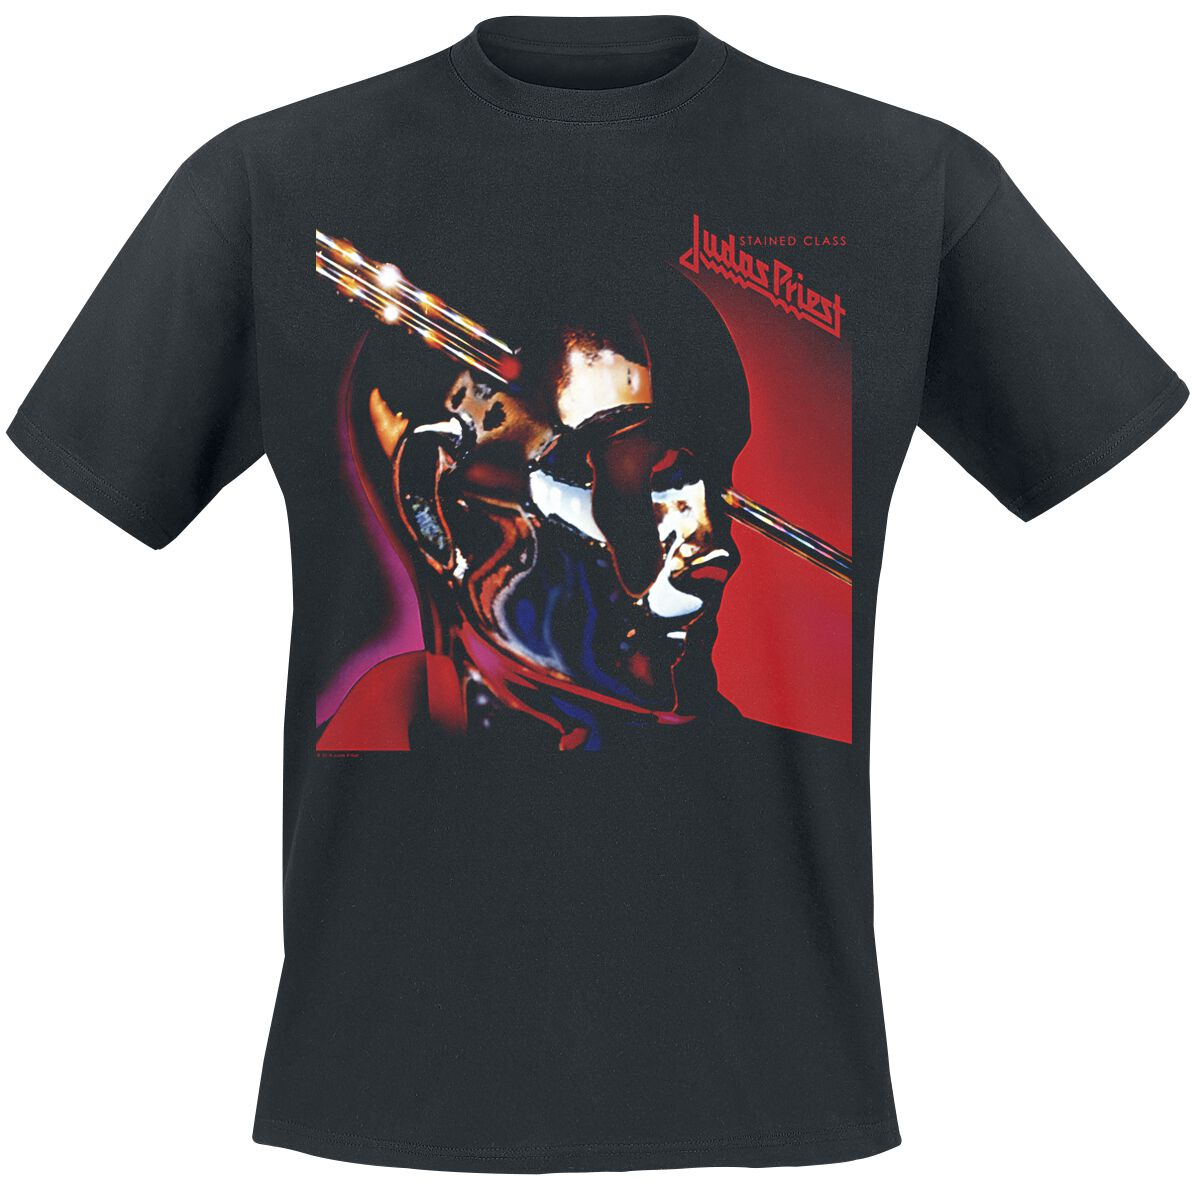 Image of   Judas Priest Stained class T-Shirt sort